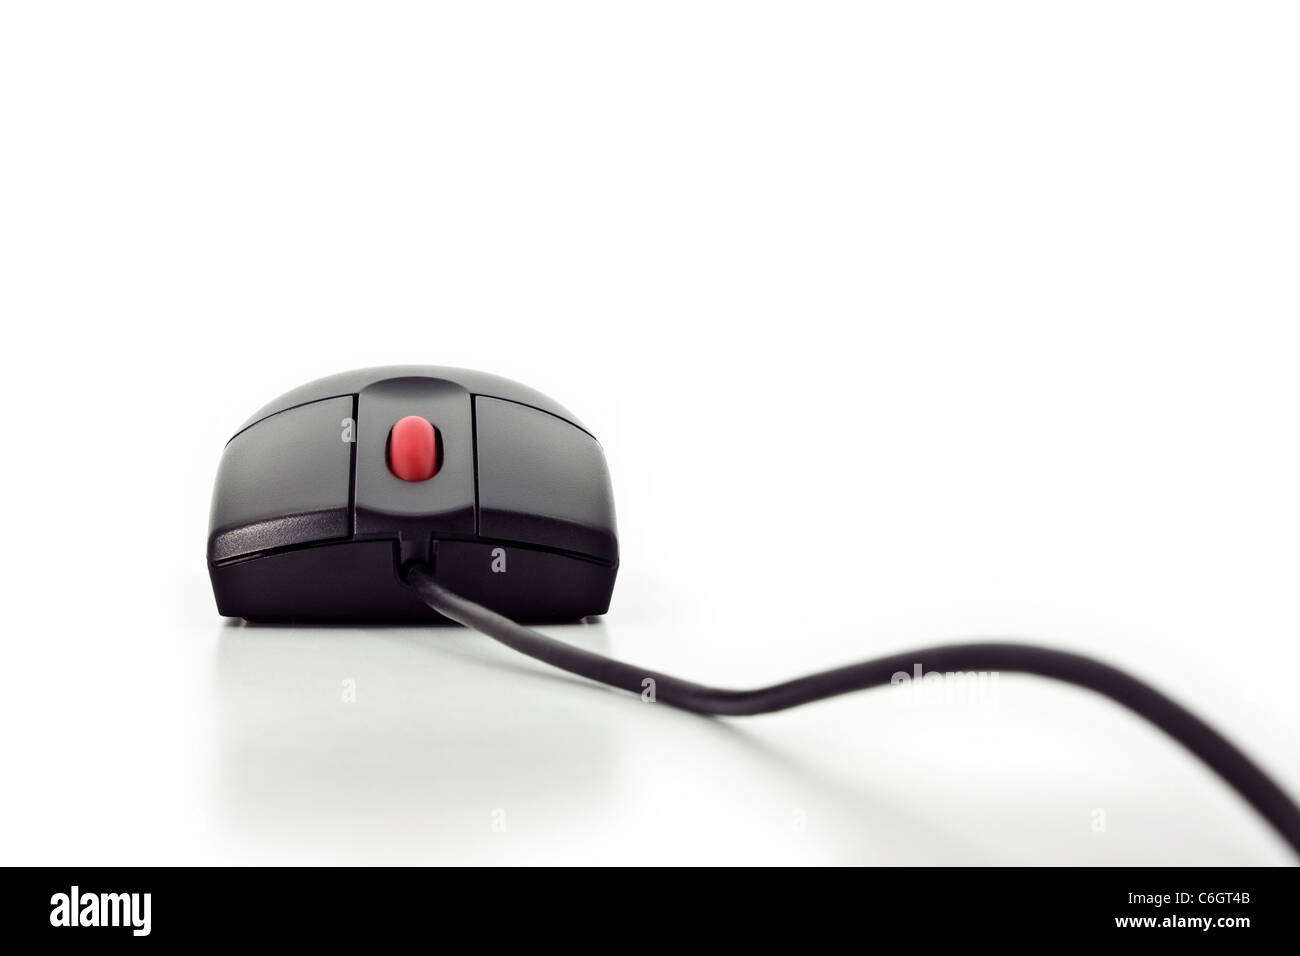 Close front view of a black computer mouse with a red wheel button isolated on white Stock Photo